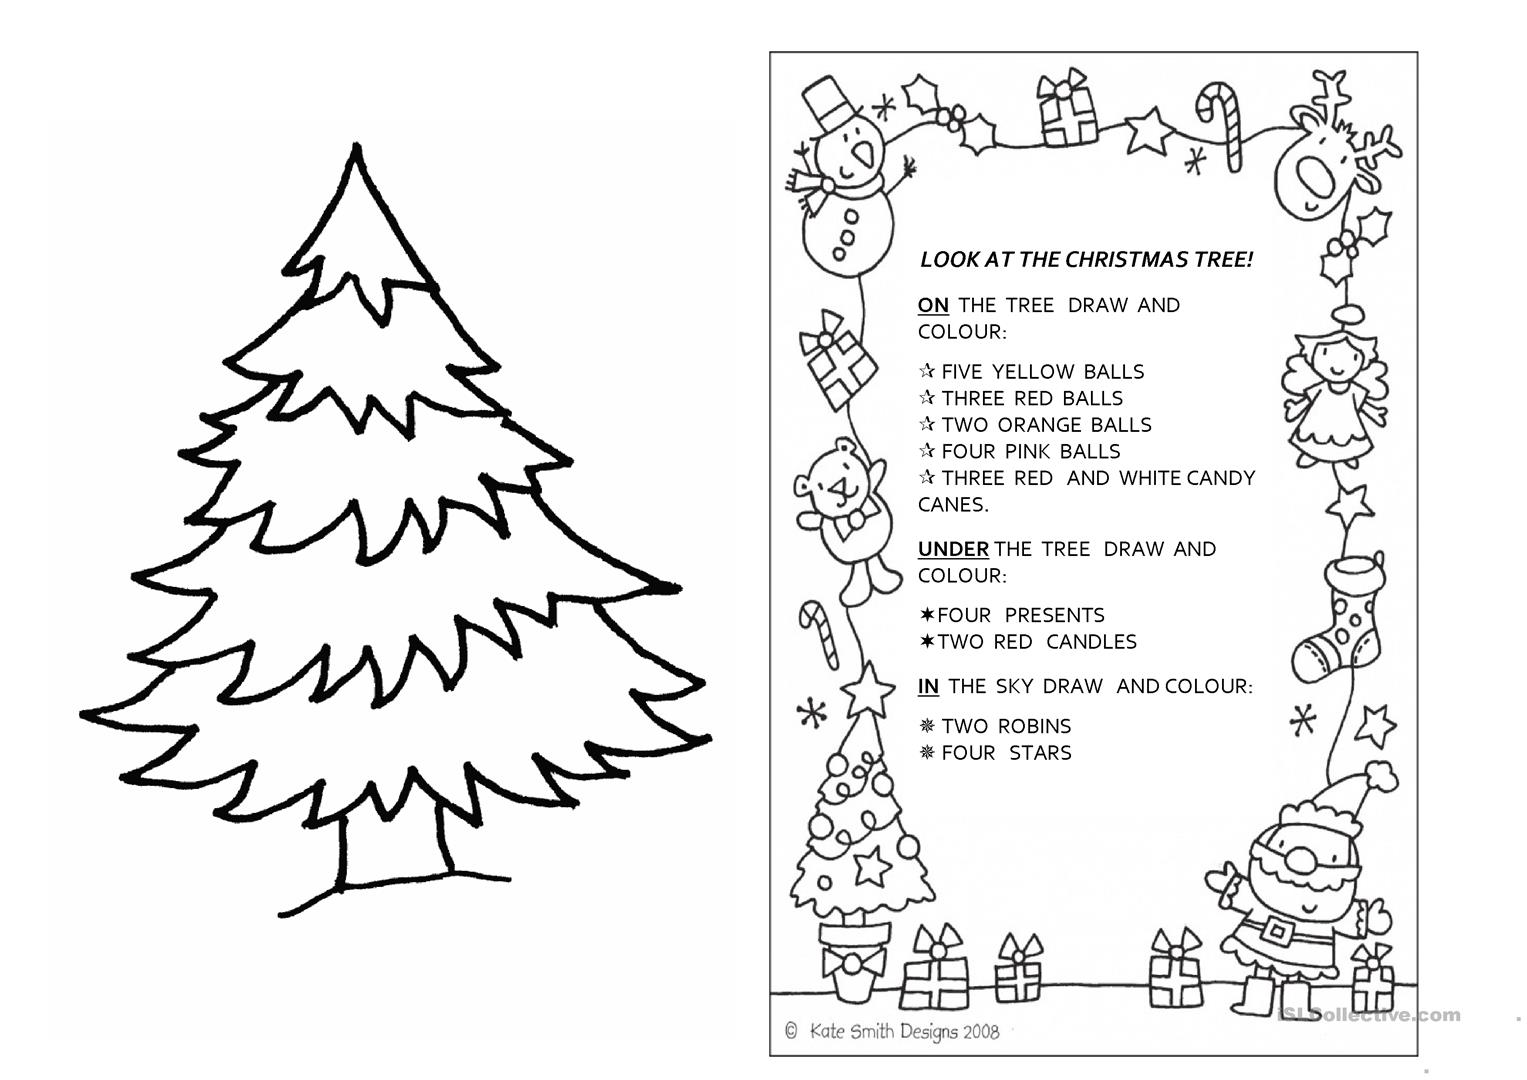 My Xmas Tree Worksheet